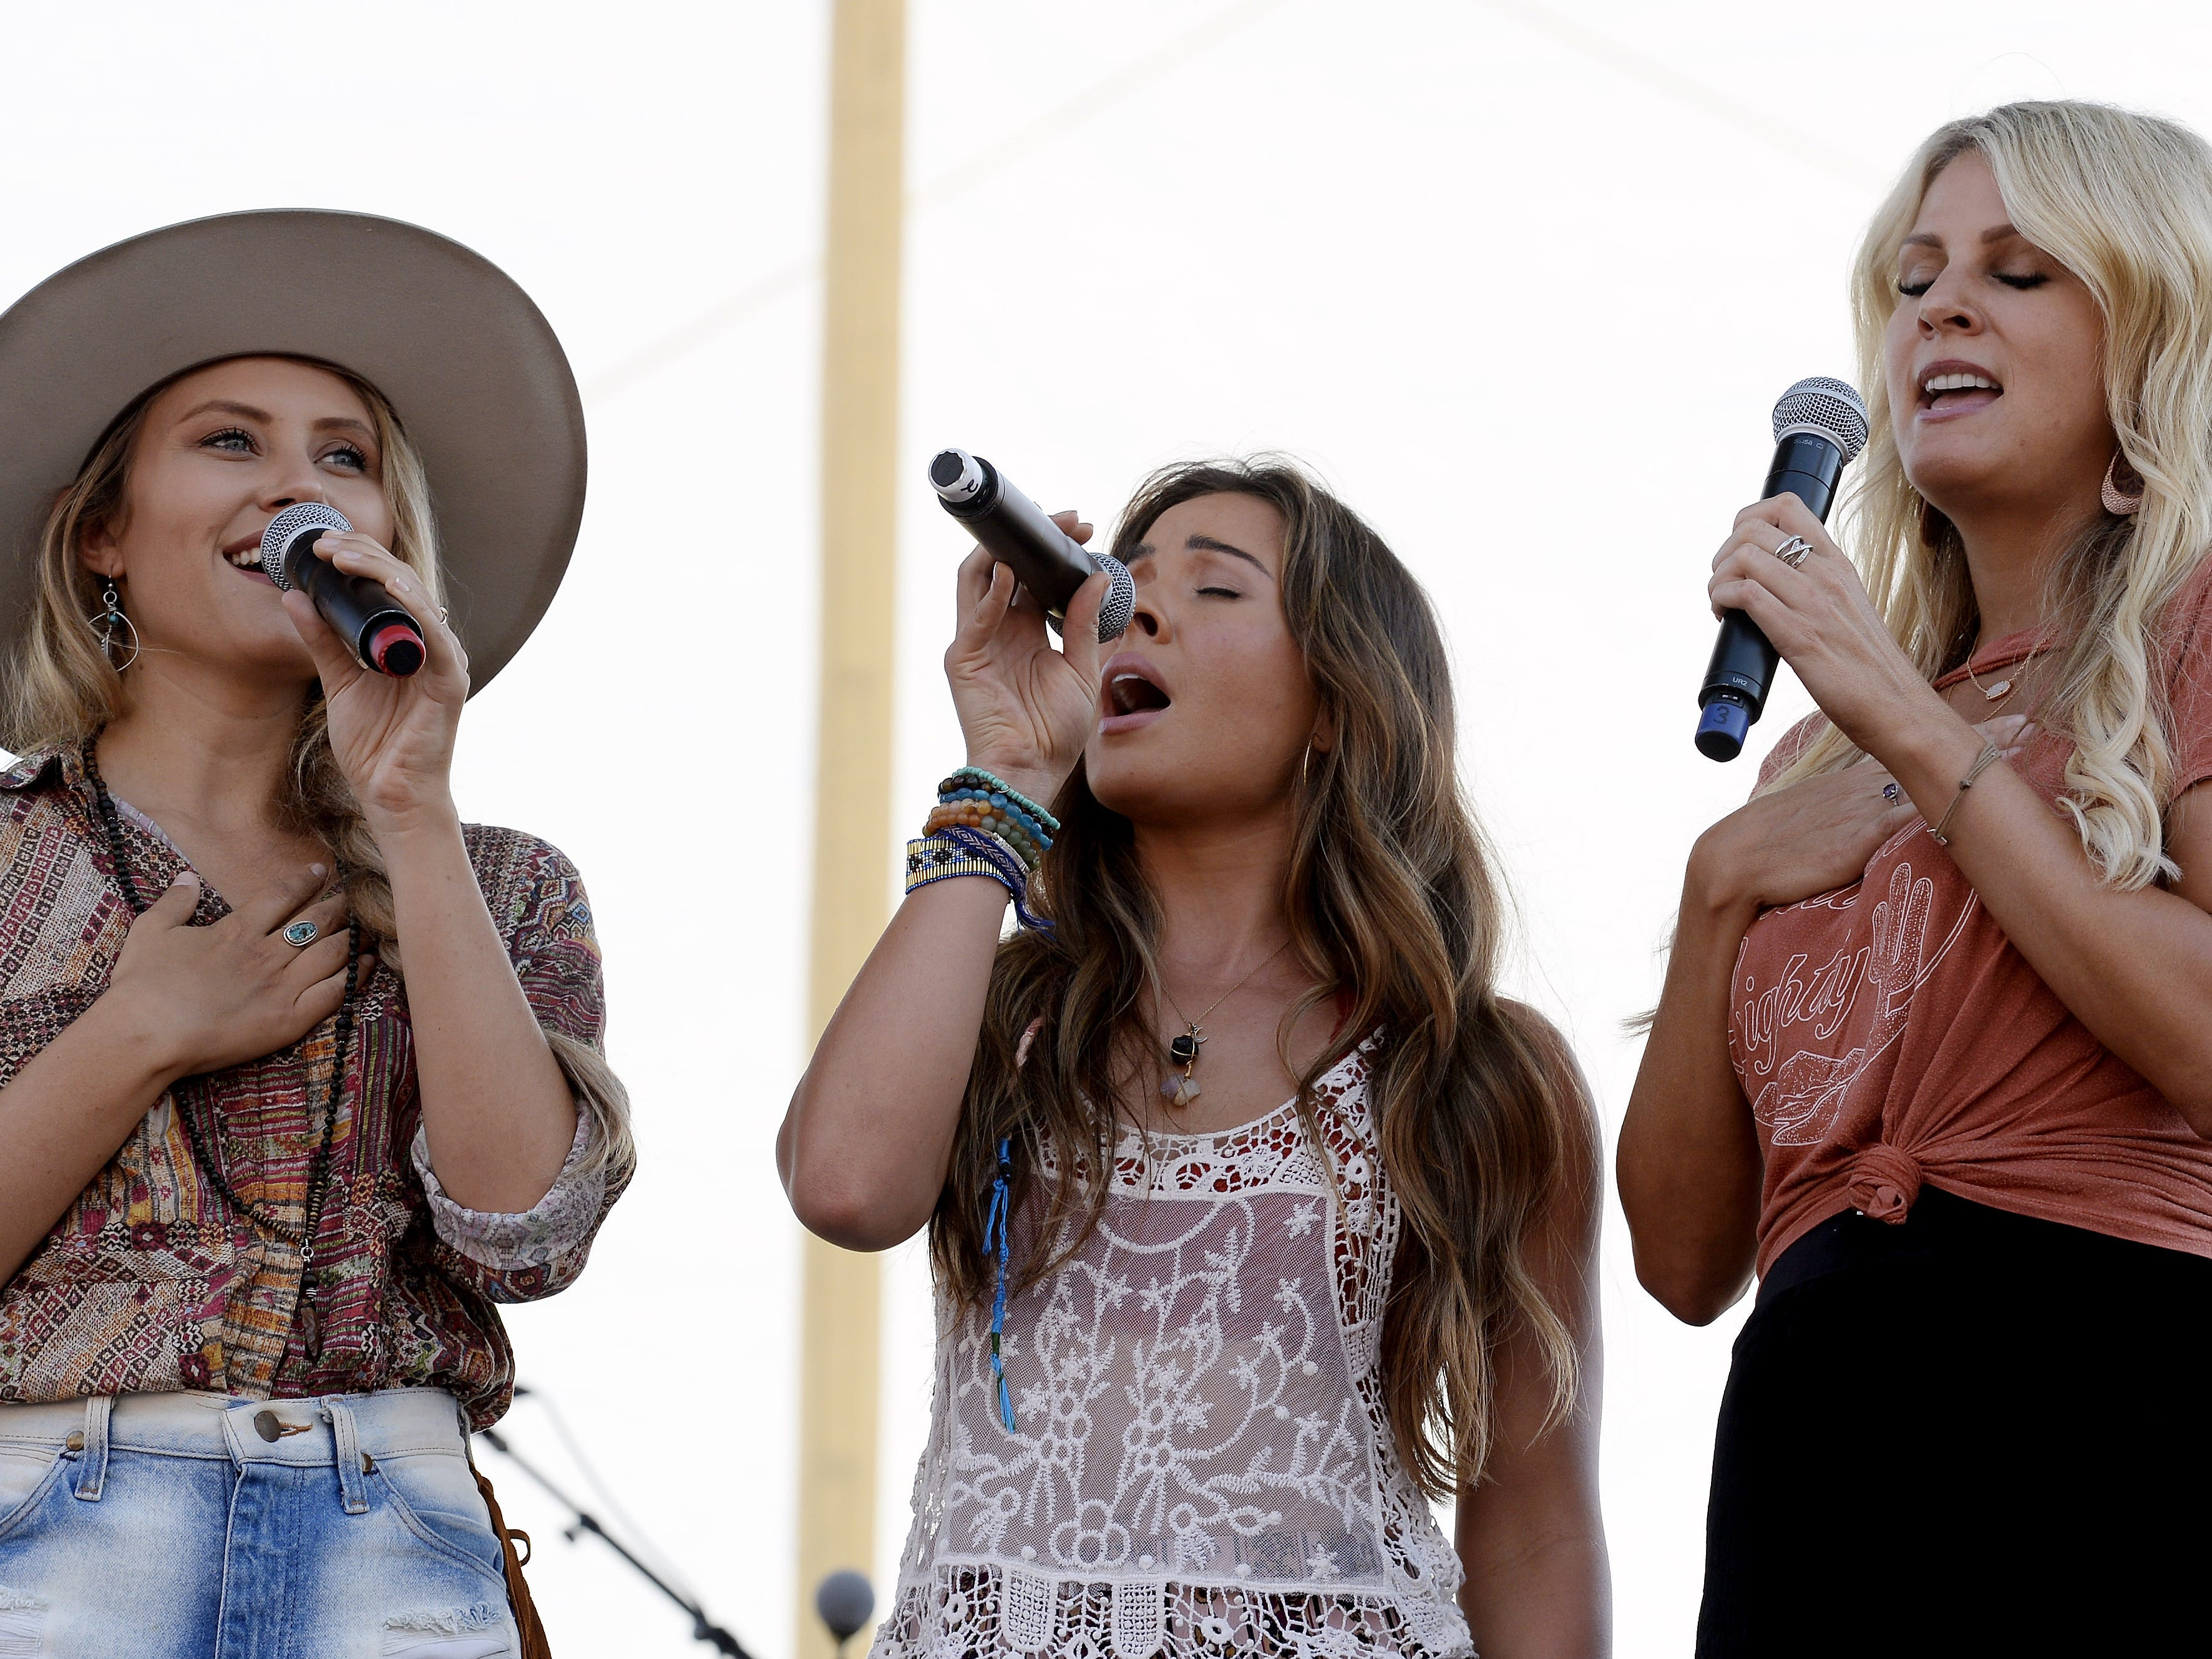 Runaway June is scheduled to play the Chevy Riverfront Stage at CMA Fest 2019.